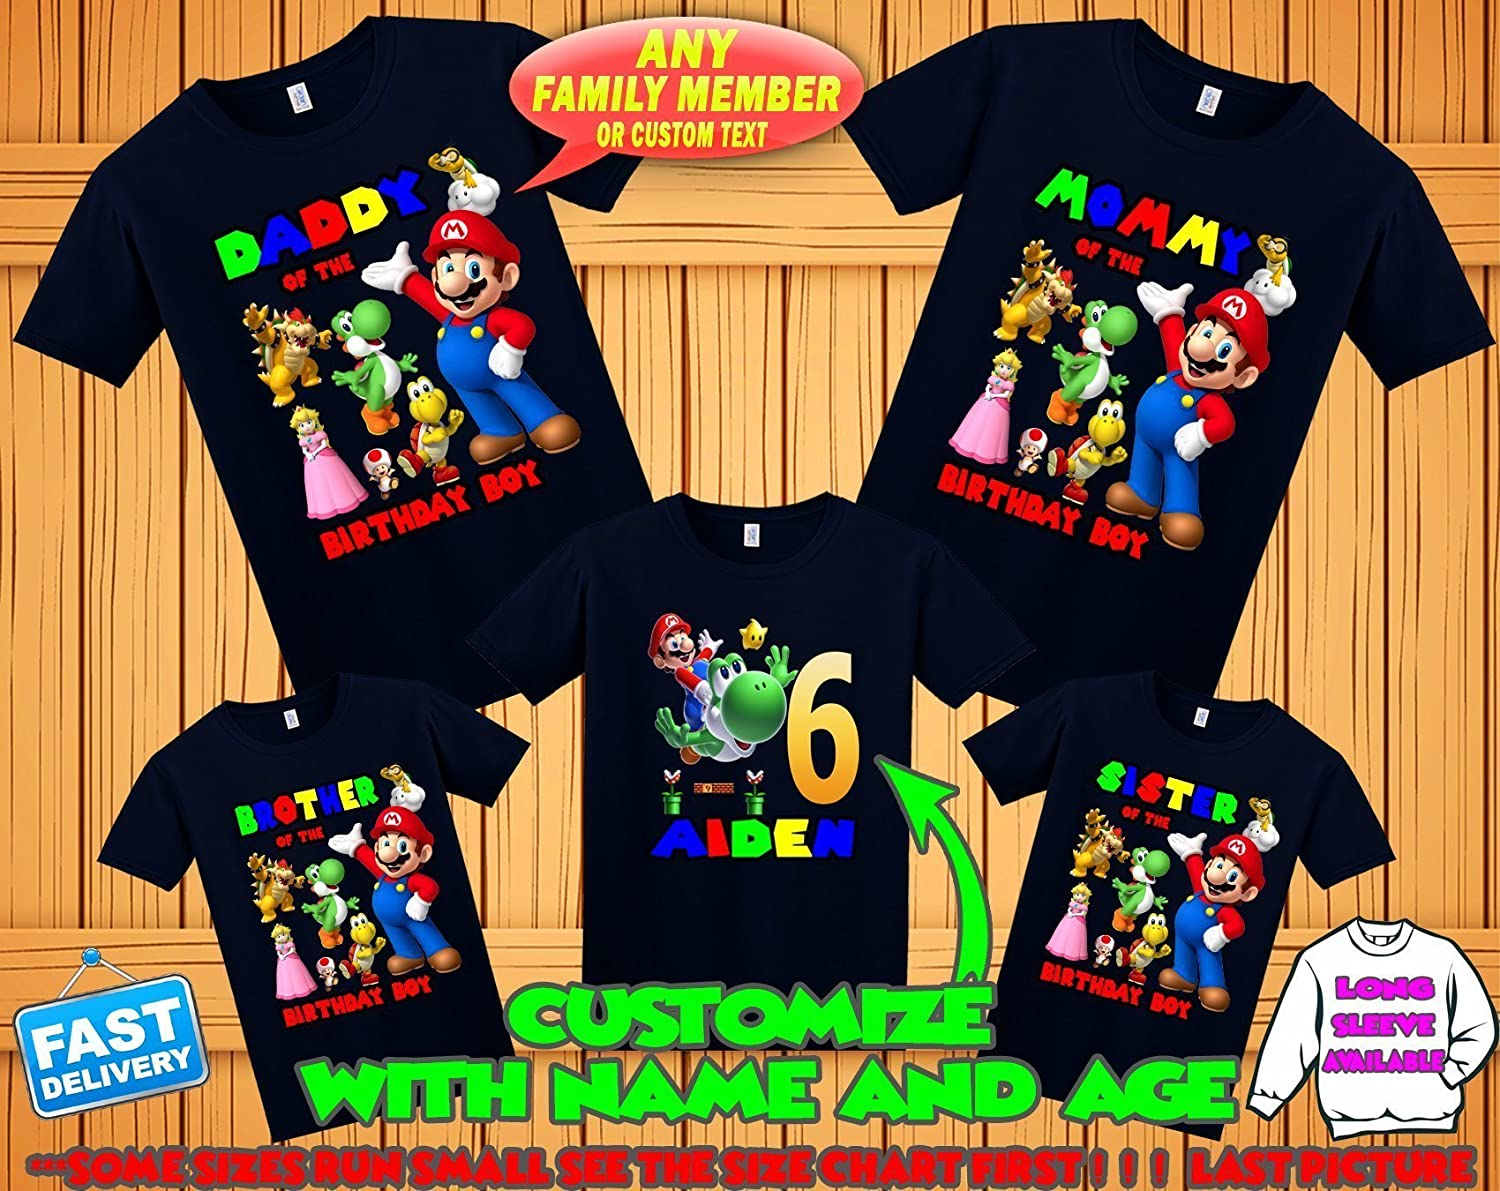 Super Mario birthday shirt, Super Mario family shirts, Super Mario theme party shirts, Super Mario matching shirts, Super Mario tshirt